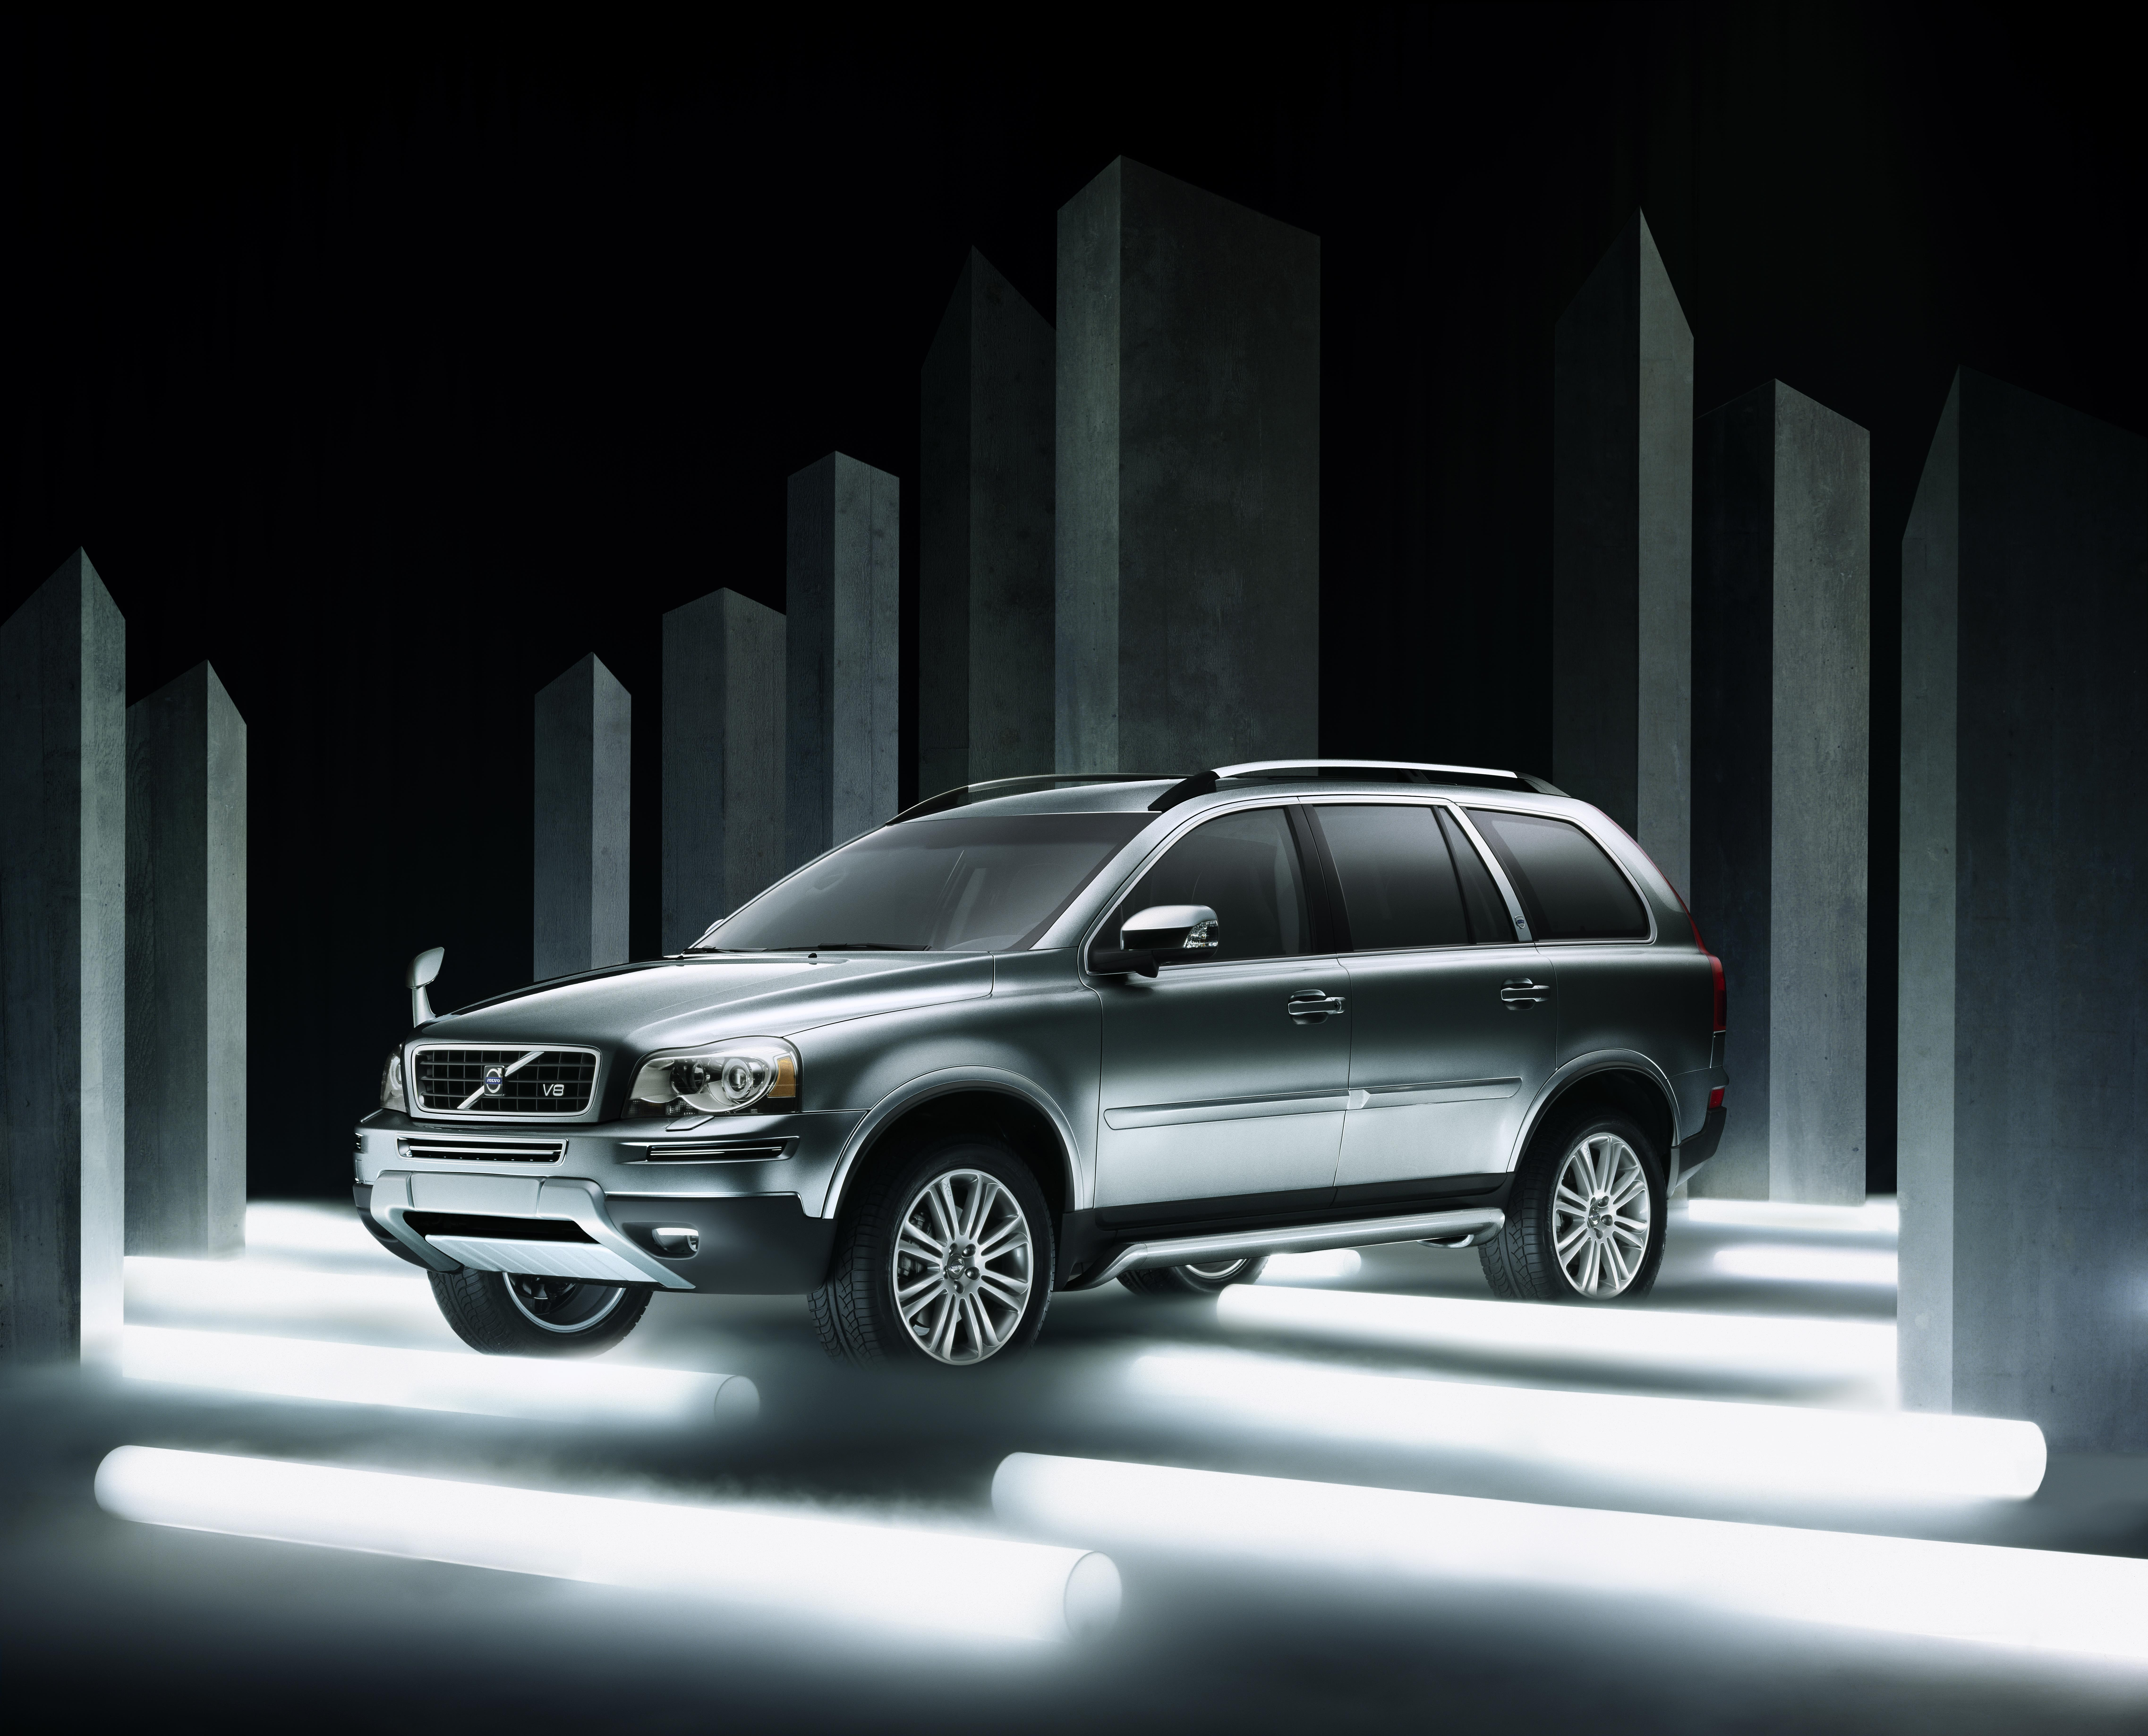 nyc control pure htm models volvo suv compact nj lease deals